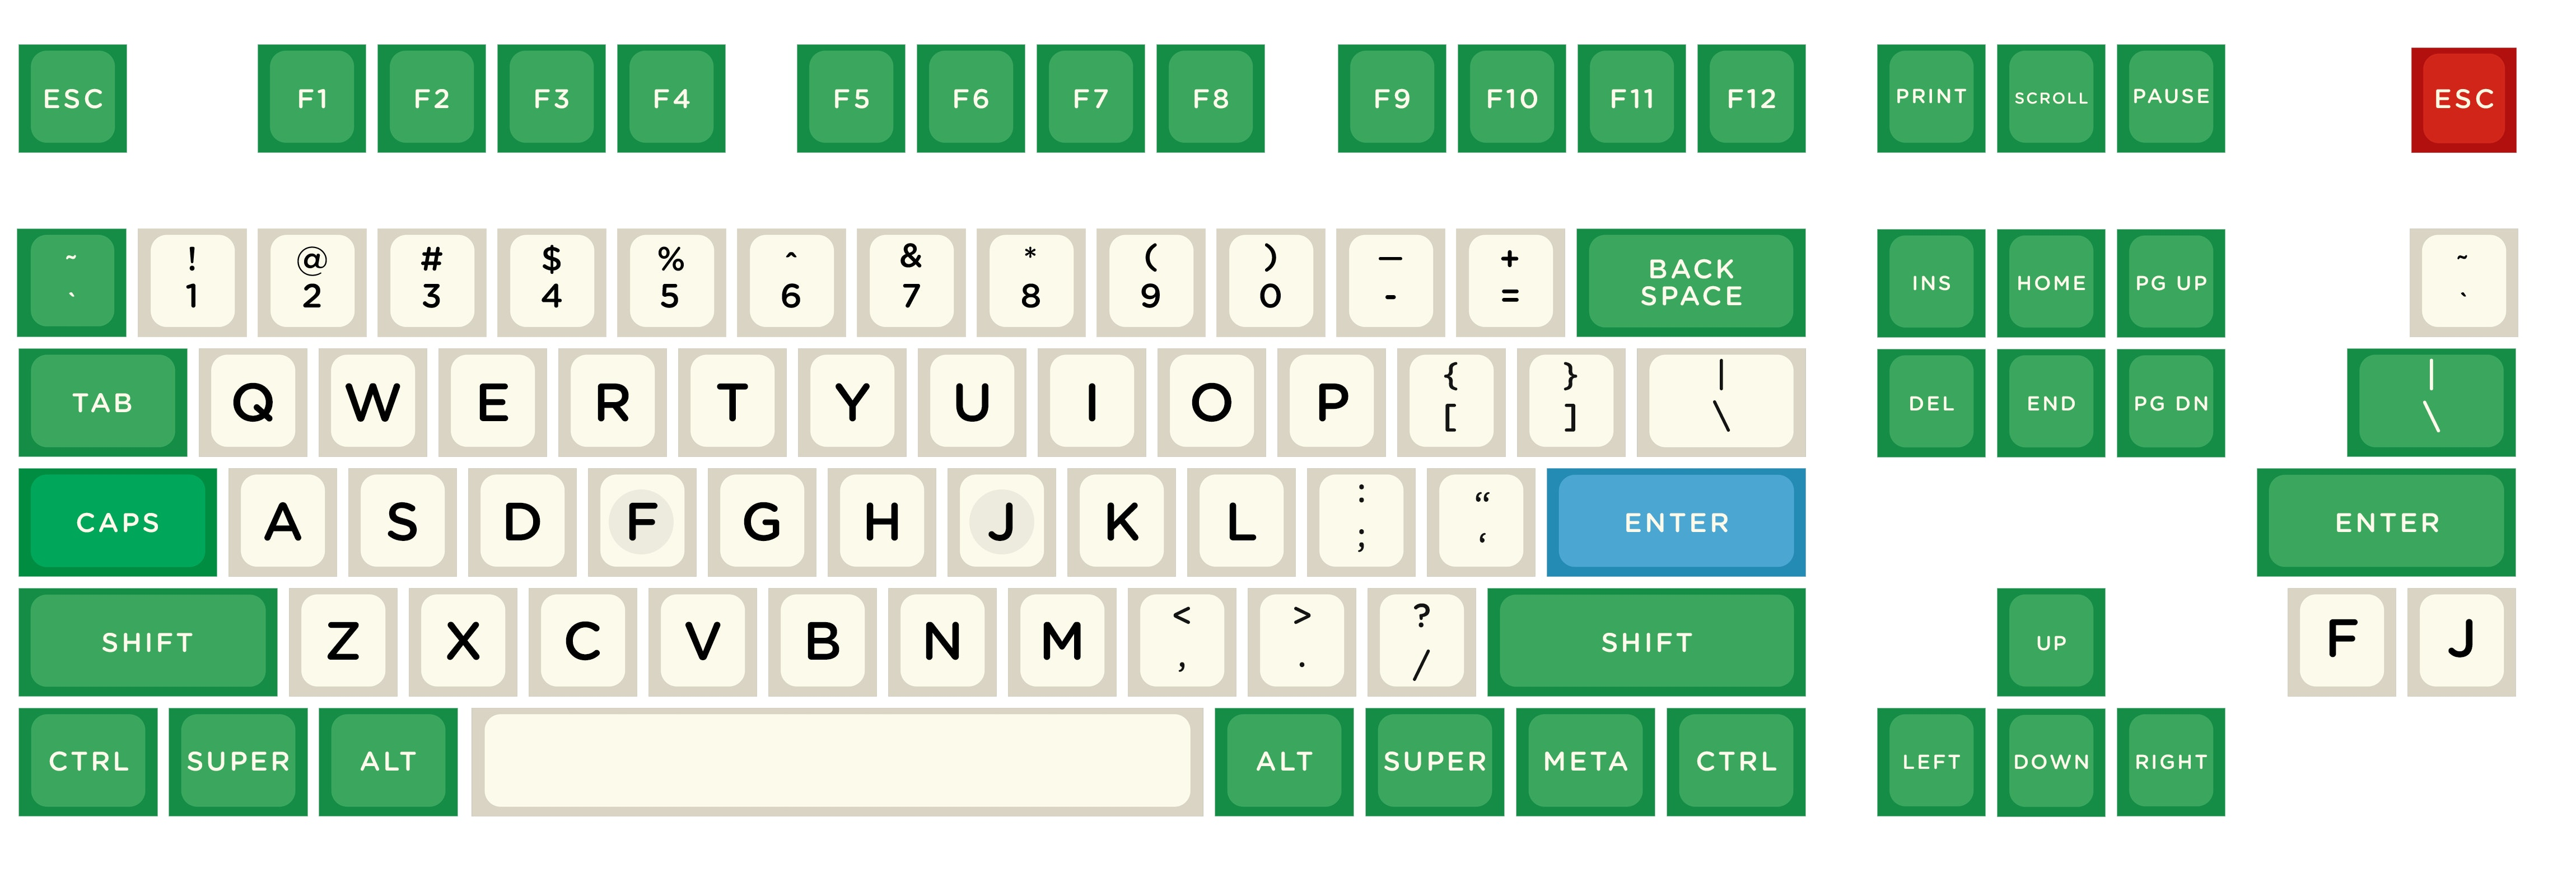 [IC] GROUND CONTROL - ABS SA 1-2-3-3-3-4 Keycap Set